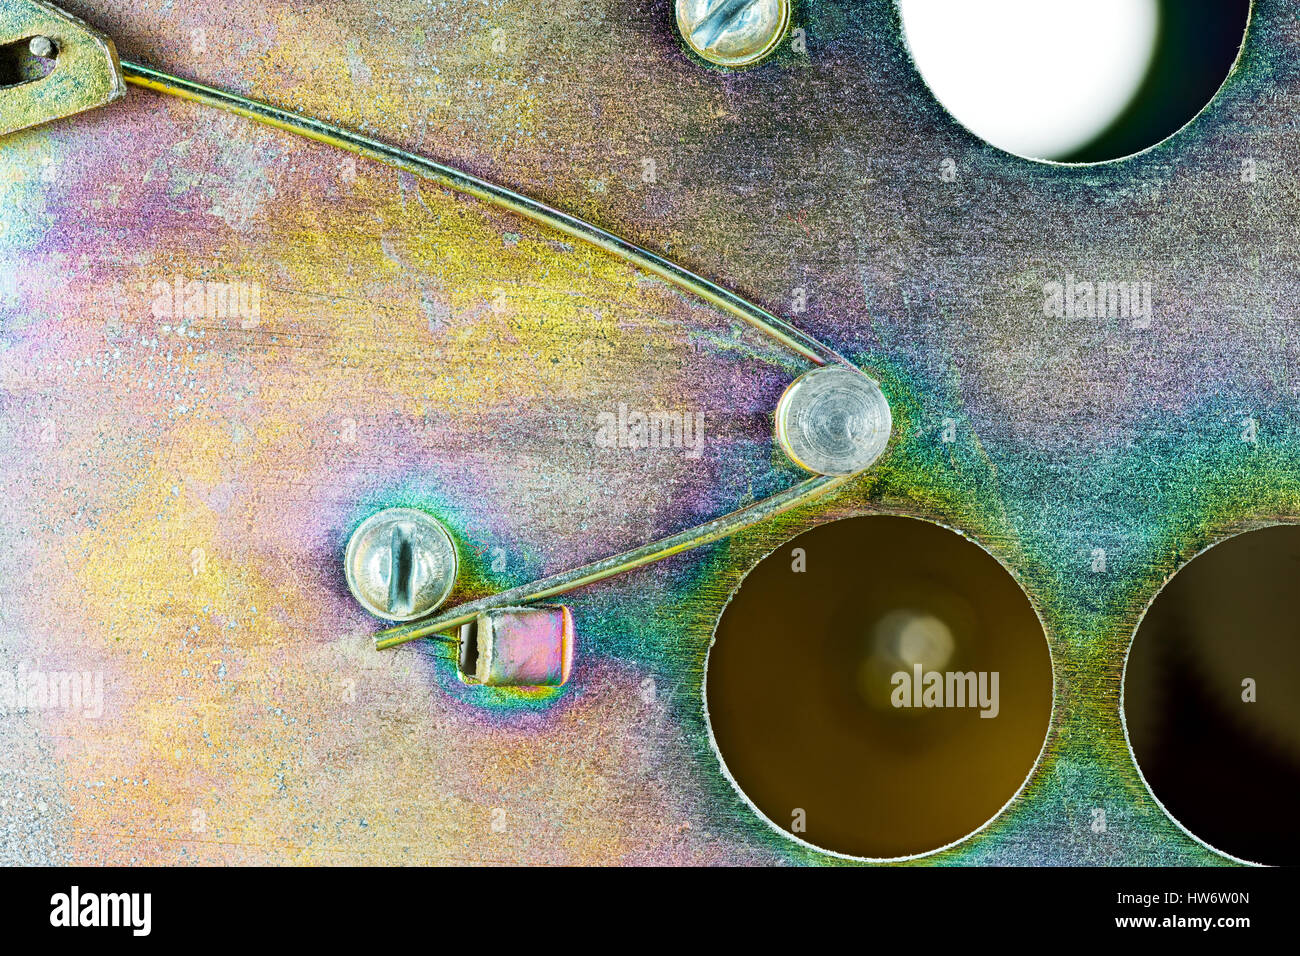 yellow galvanized zinc plate with compression spring, lever, screws - Stock Image